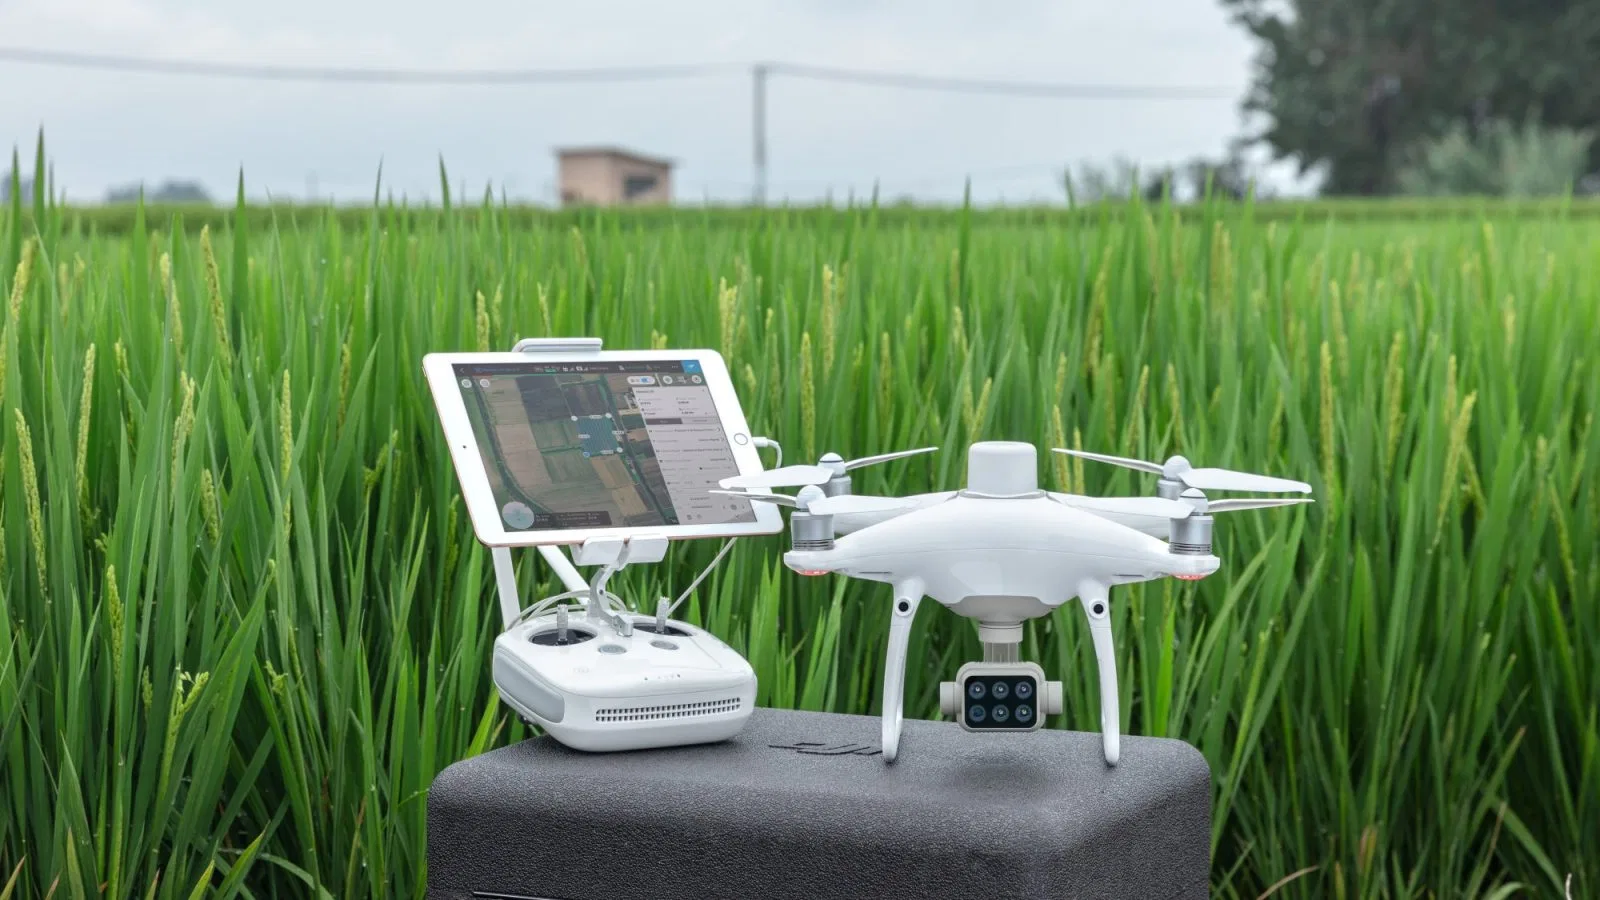 DJI P4 Multispectral drone for precision agriculture